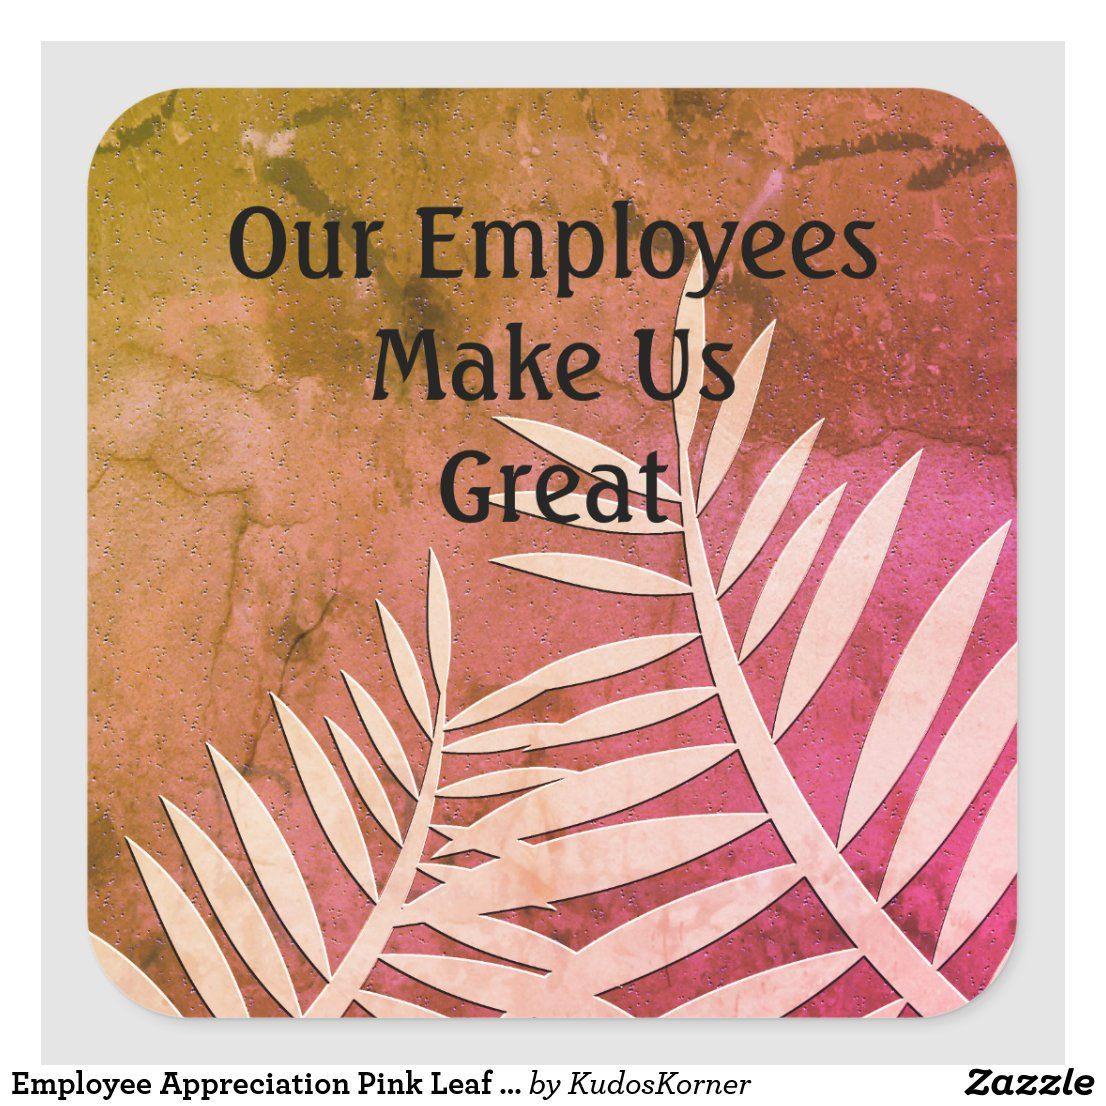 Employee Appreciation Pink Leaf Silhouette Office Square Sticker | Zazzle.com